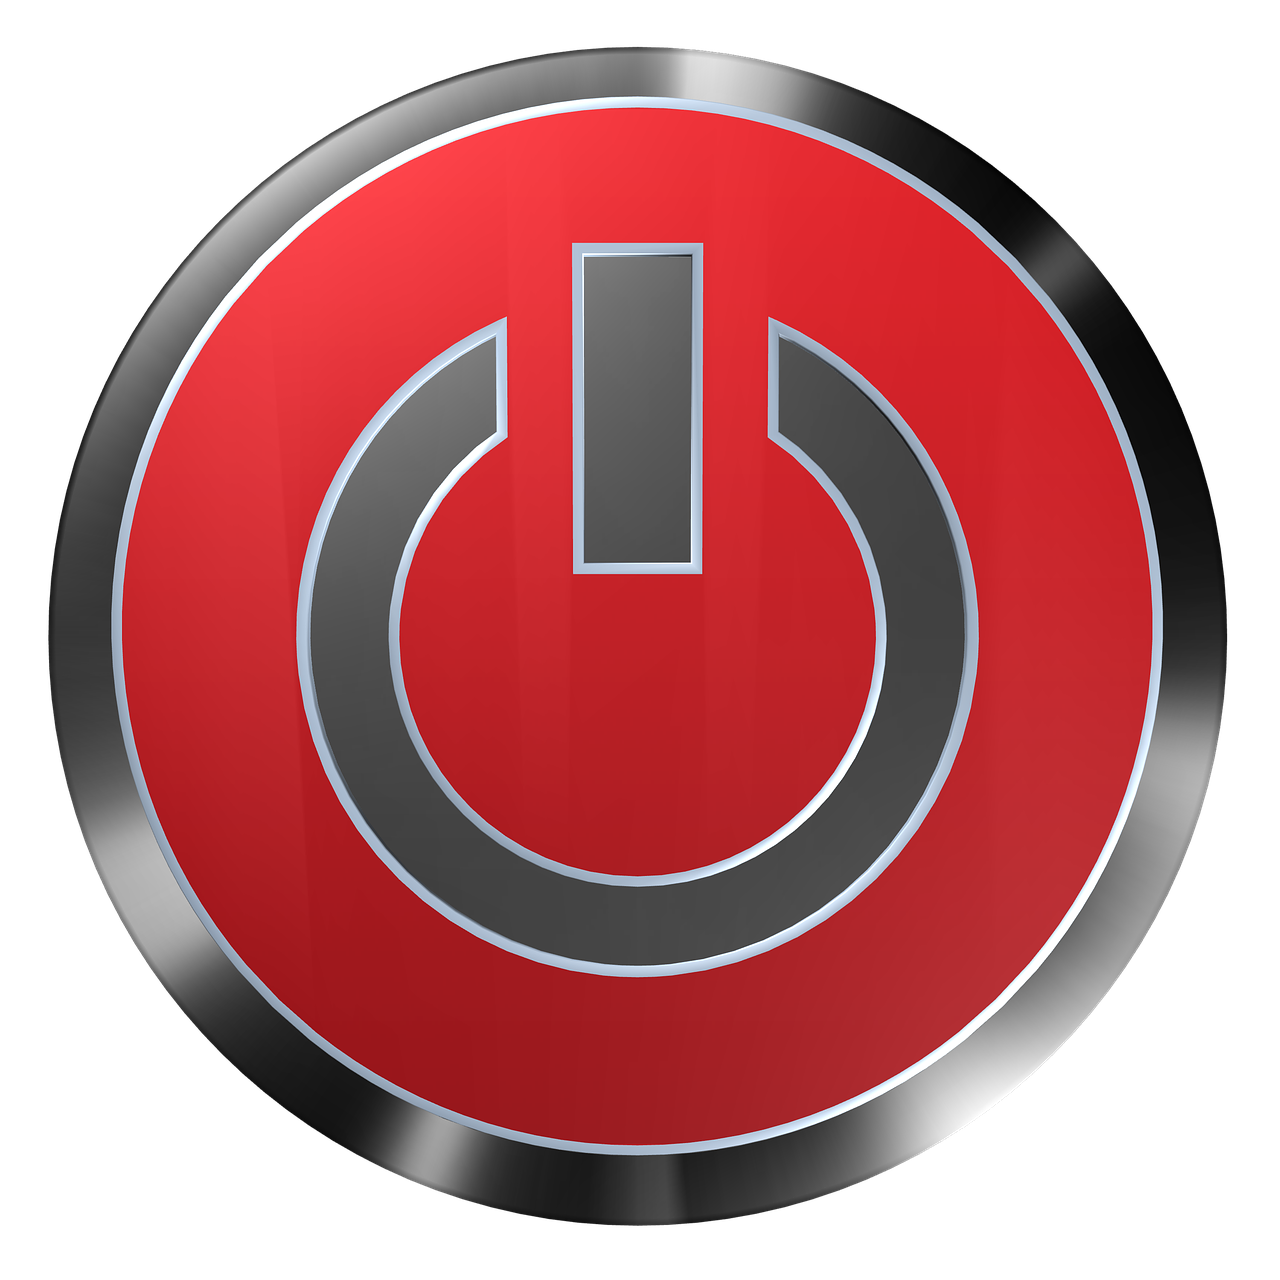 Button png images